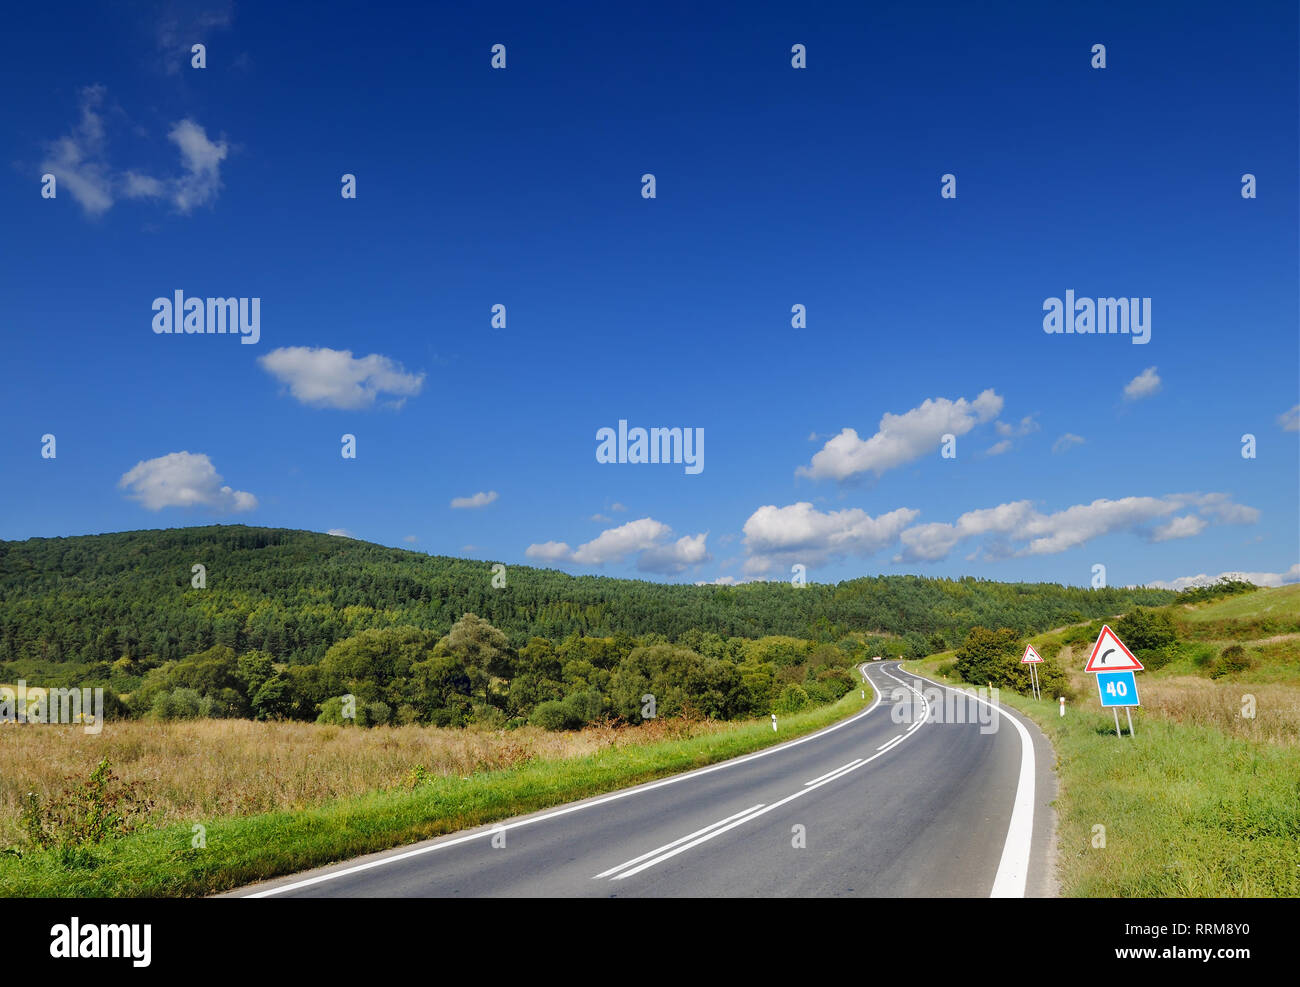 Road among green fields, blue sky and white clouds in the background Stock Photo